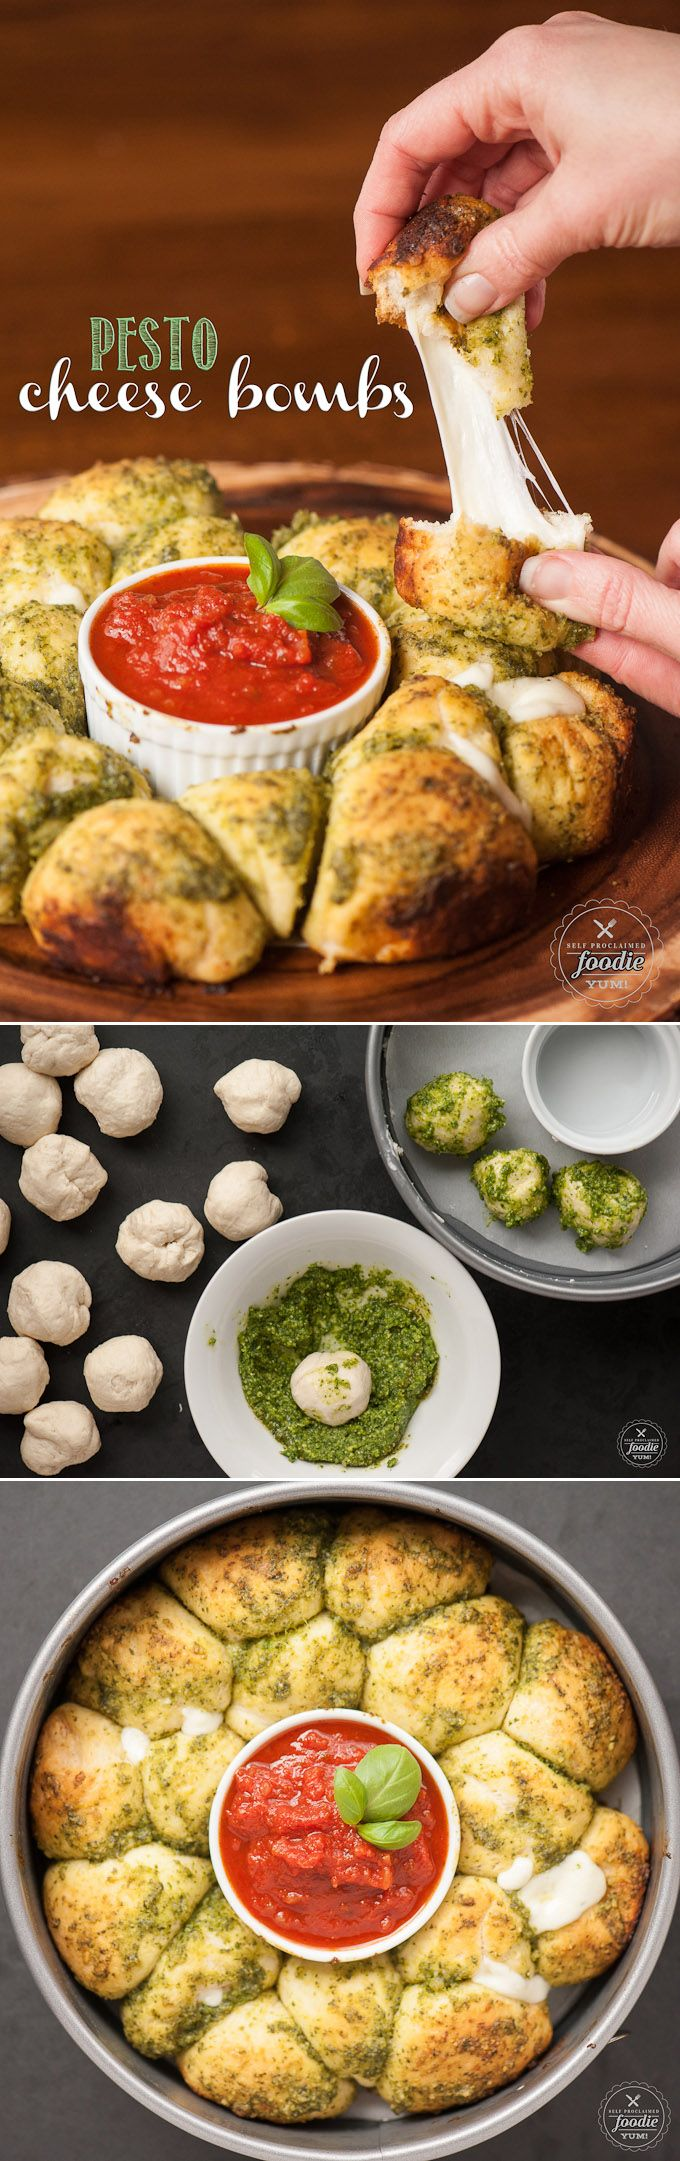 Ooey gooey melty Pesto Cheese Bombs with marinara sauce are super easy to make and